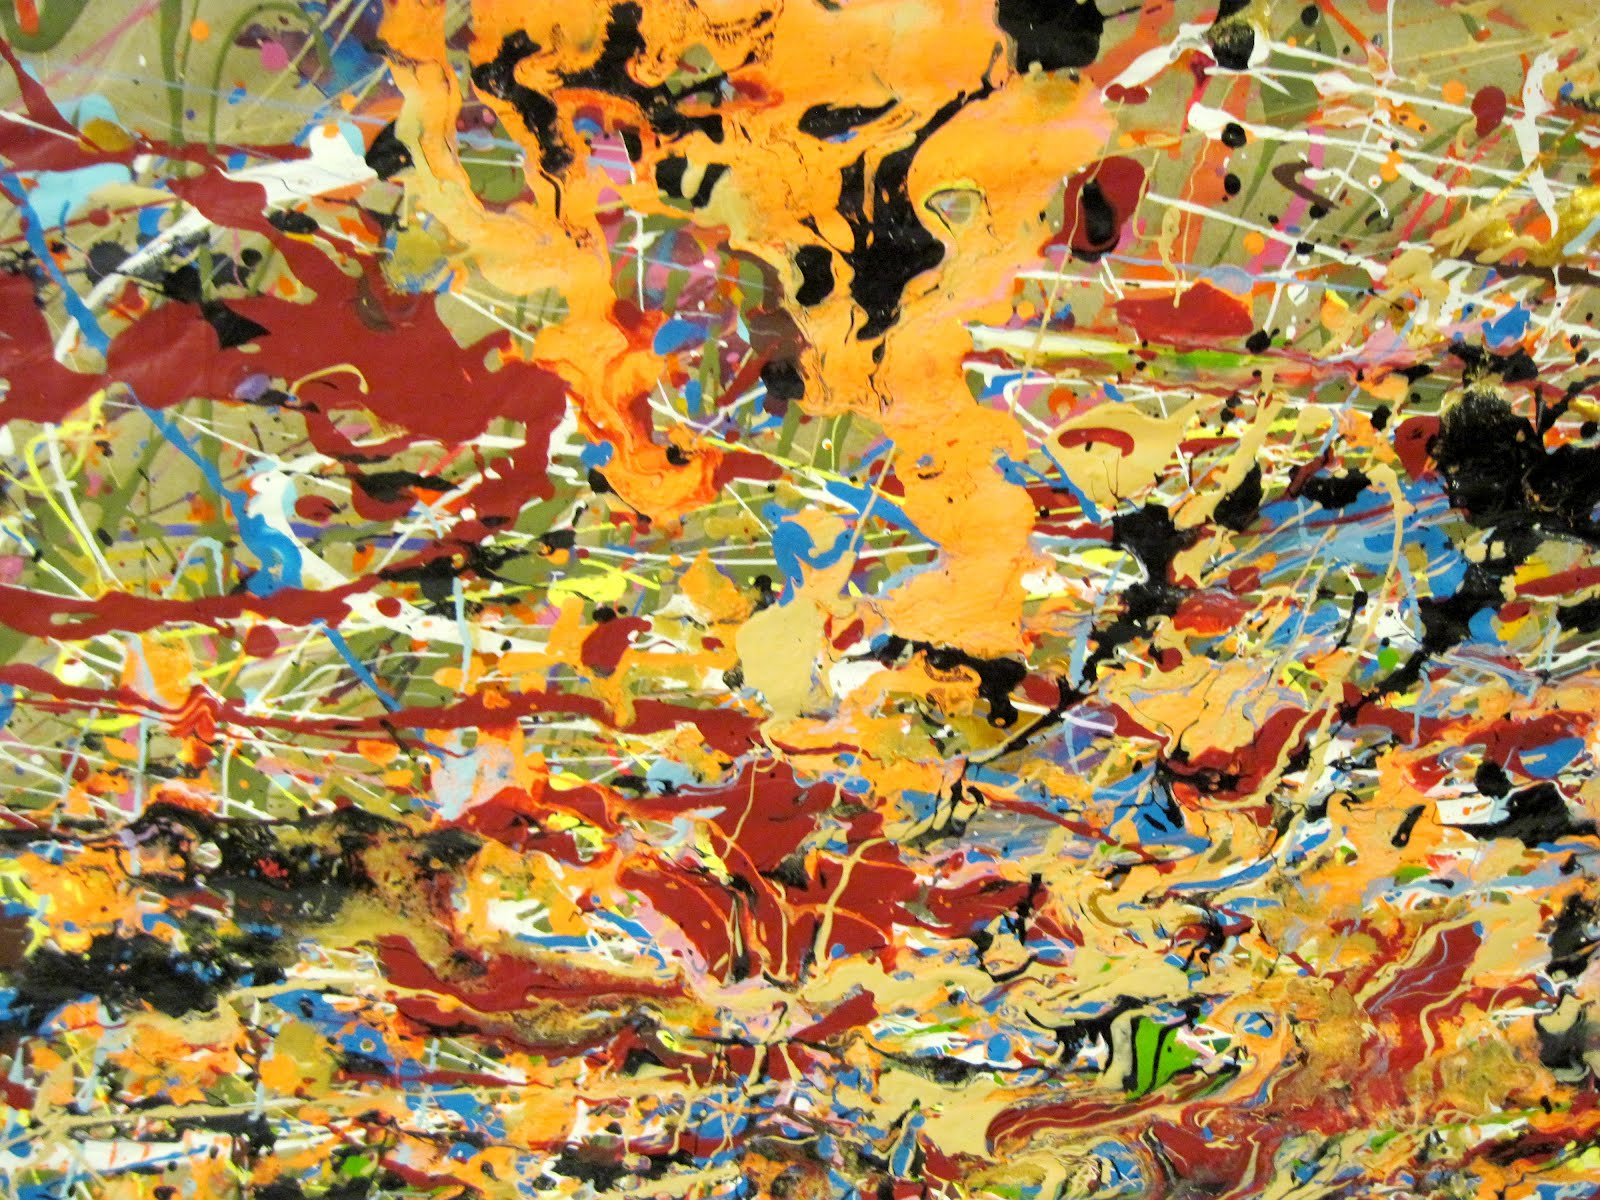 the life and works of the american artist jackson pollock Art trail: abstract artist jackson pollock and his wife lee krasner in 1950 if detective petraco's findings are accepted by the trustees board, it would be a windfall for miss kligman's estate.